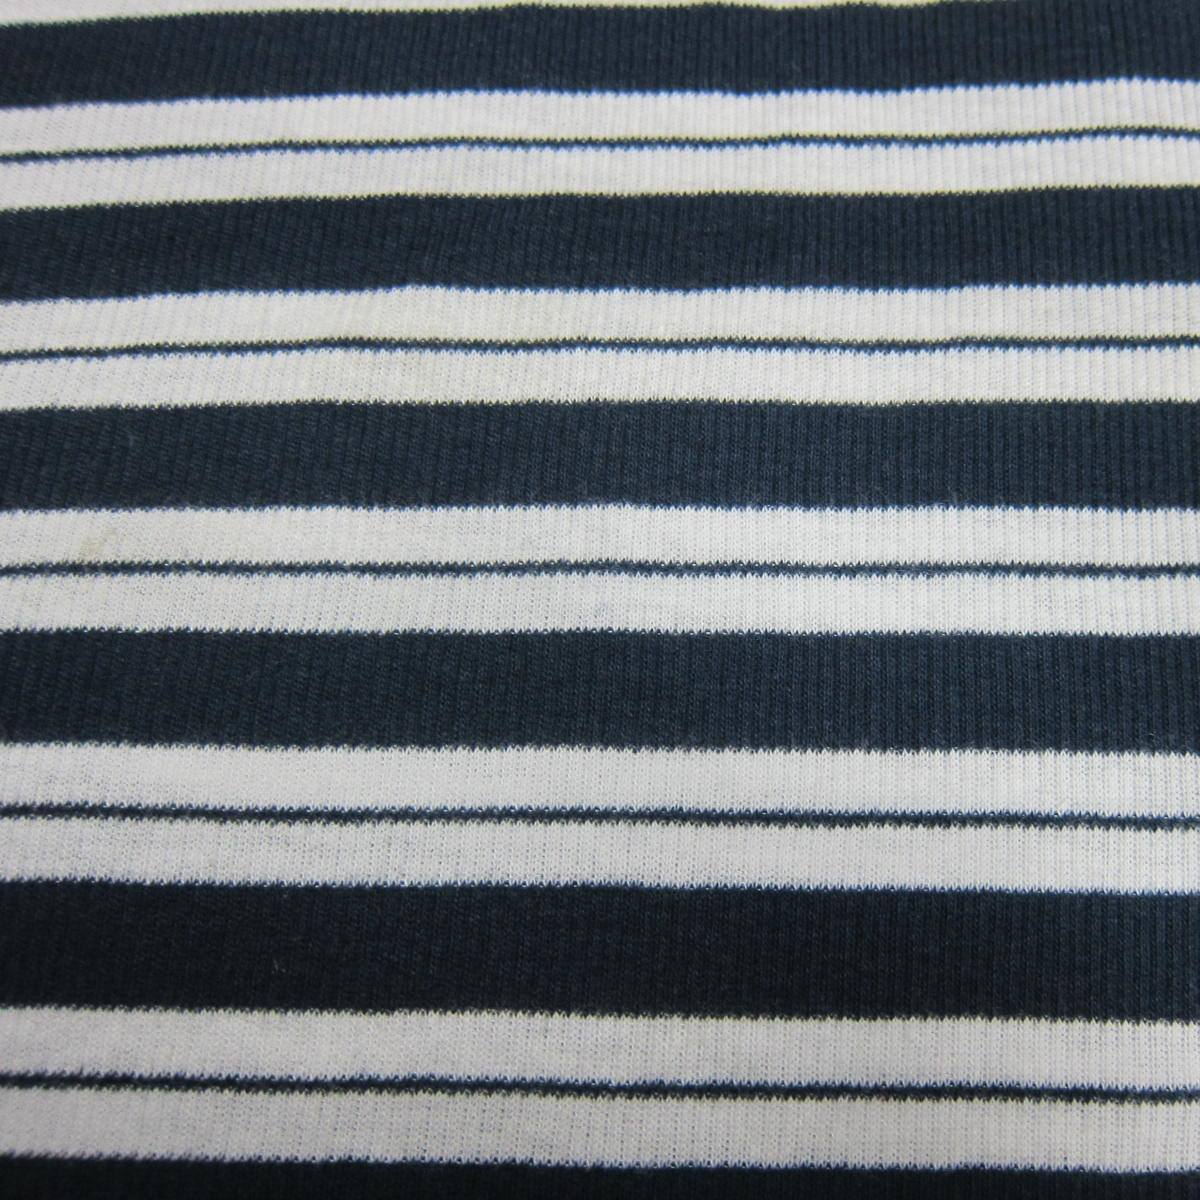 d1feb1c710e Blue and White Stripe Cotton Rib Knit | Nature's Fabrics